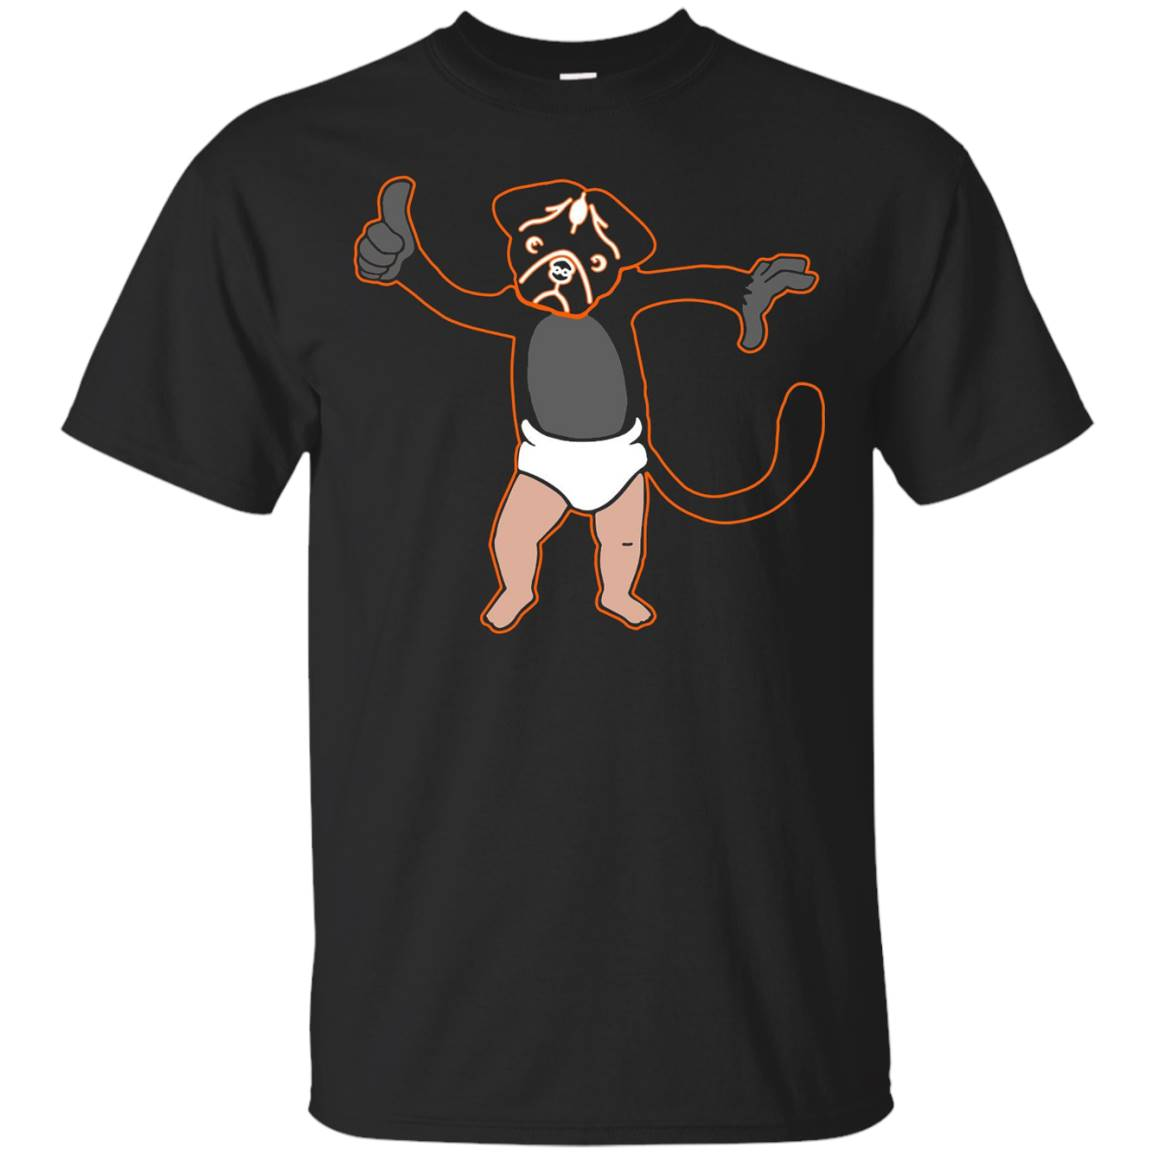 Funny T-Shirt – Monkey Puppy Baby T-Shirt